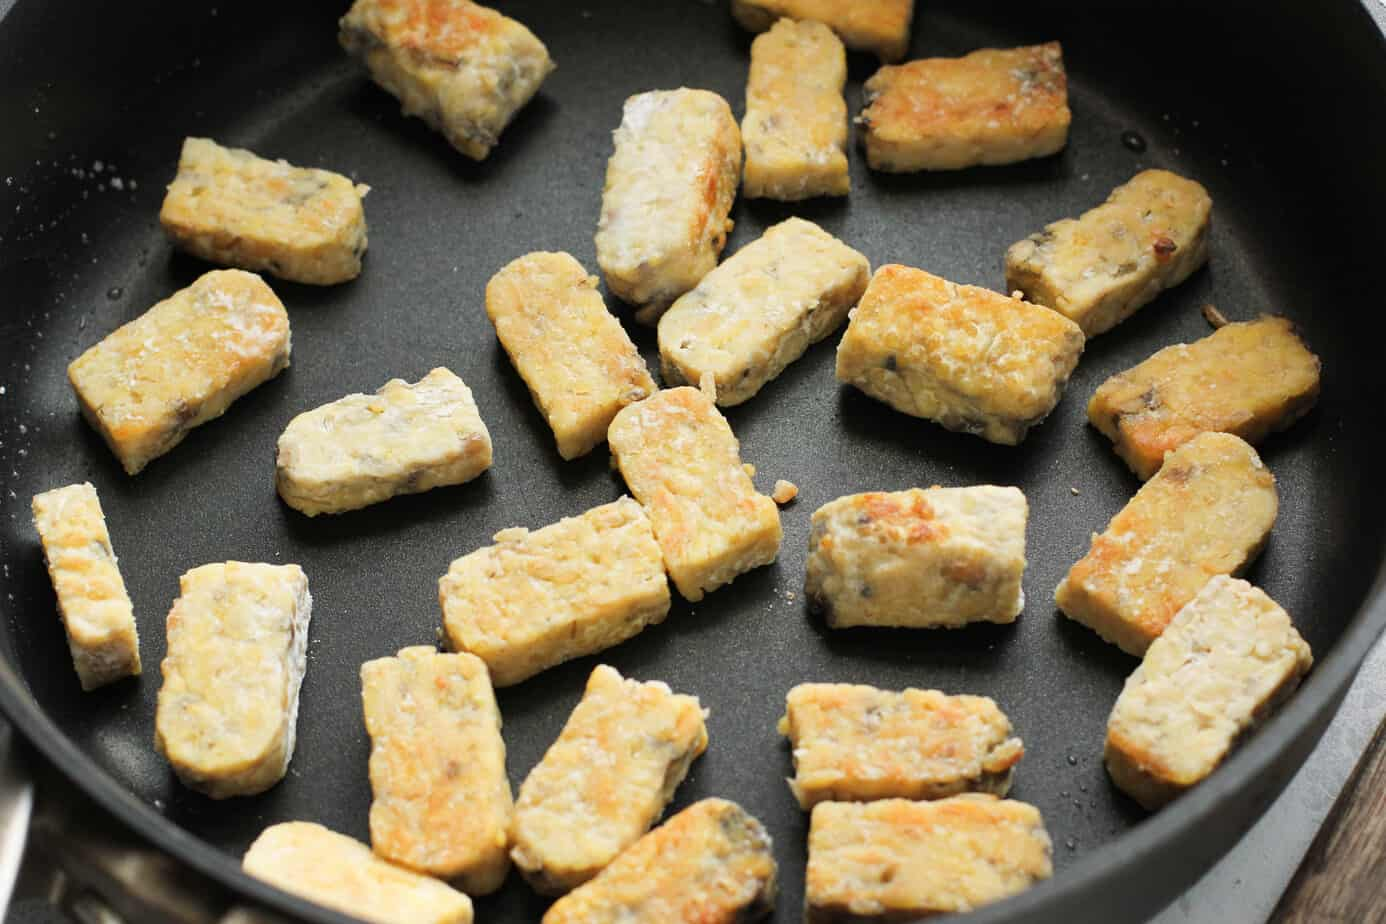 tempeh cooking in a pan